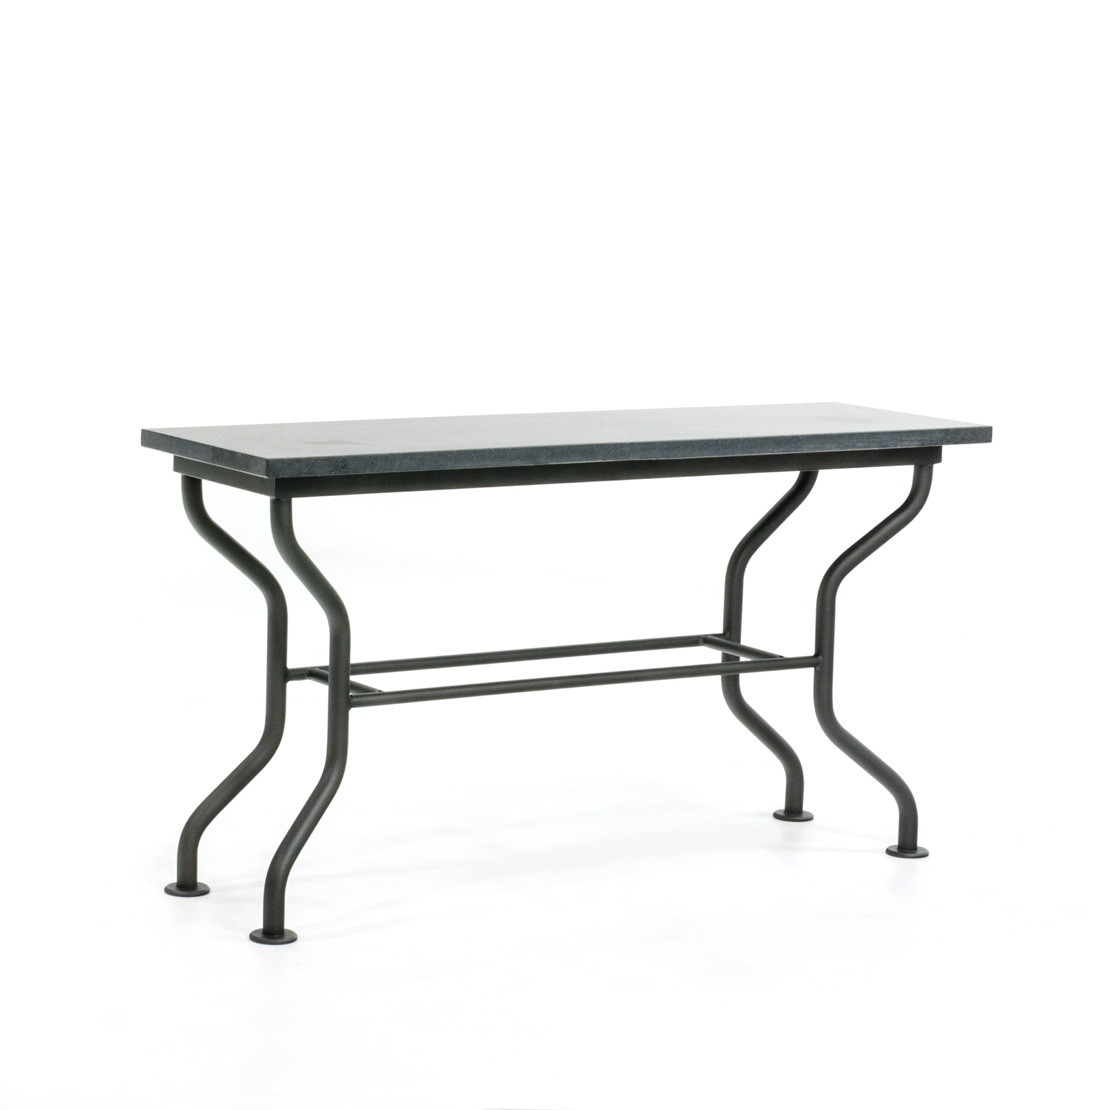 Side-table met basalt (gezoet) blad